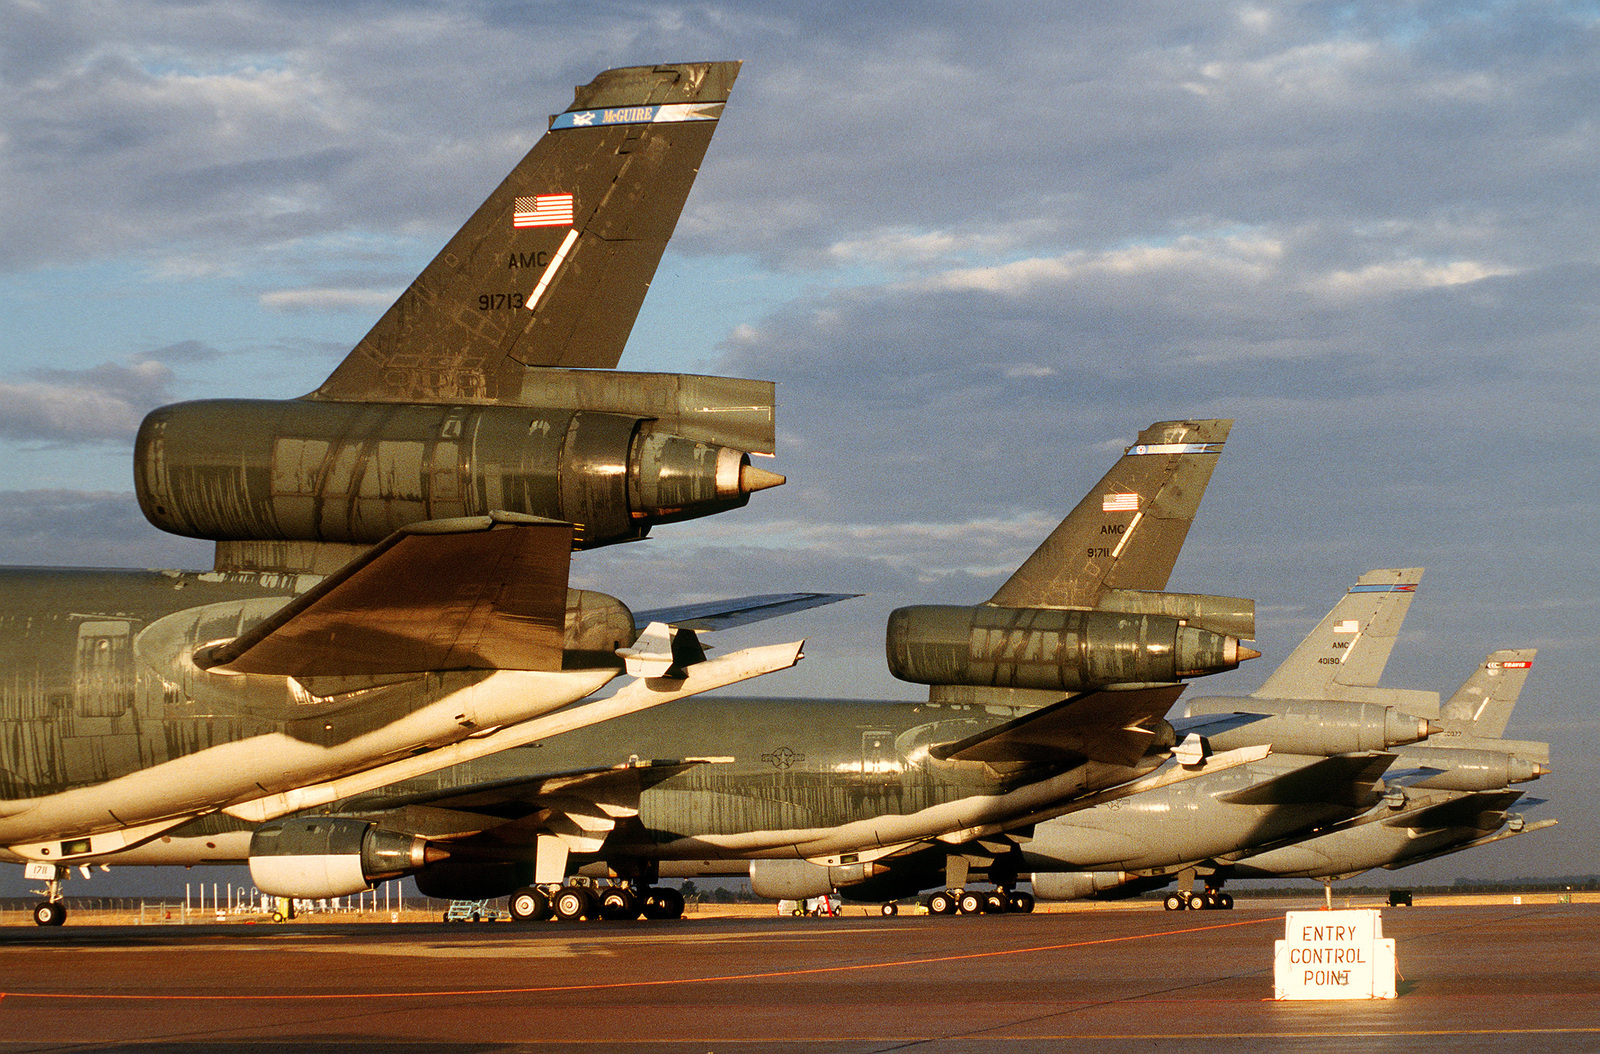 KC-10s deployed in support of the operation from various US Air Force bases sit on the flightline between refueling missions.(Exact date unknown)